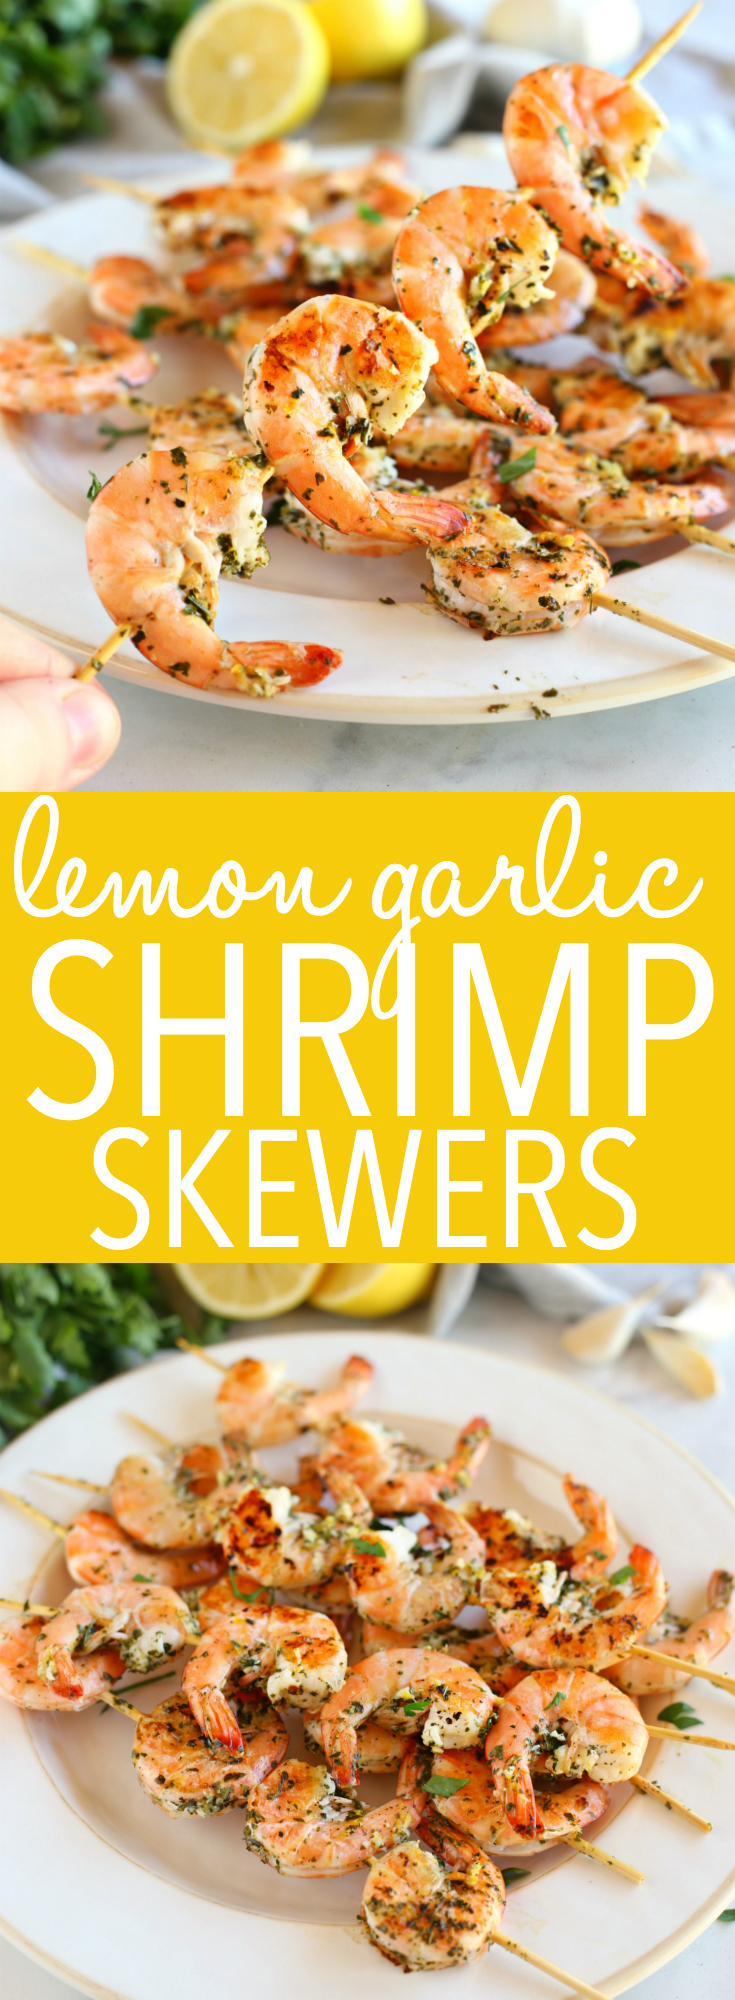 These Lemon Garlic Grilled Shrimp Skewers make the perfect addition to any healthy meal! Marinated in fresh garlic, lemon, and white wine, these grilled shrimp are perfect for summer barbecues or grilled indoors any time of year! Recipe from thebusybaker.ca! #shrimpskewers #lemongarlicshrimp #easyshrimprecipe #healthyshrimprecipe via @busybakerblog